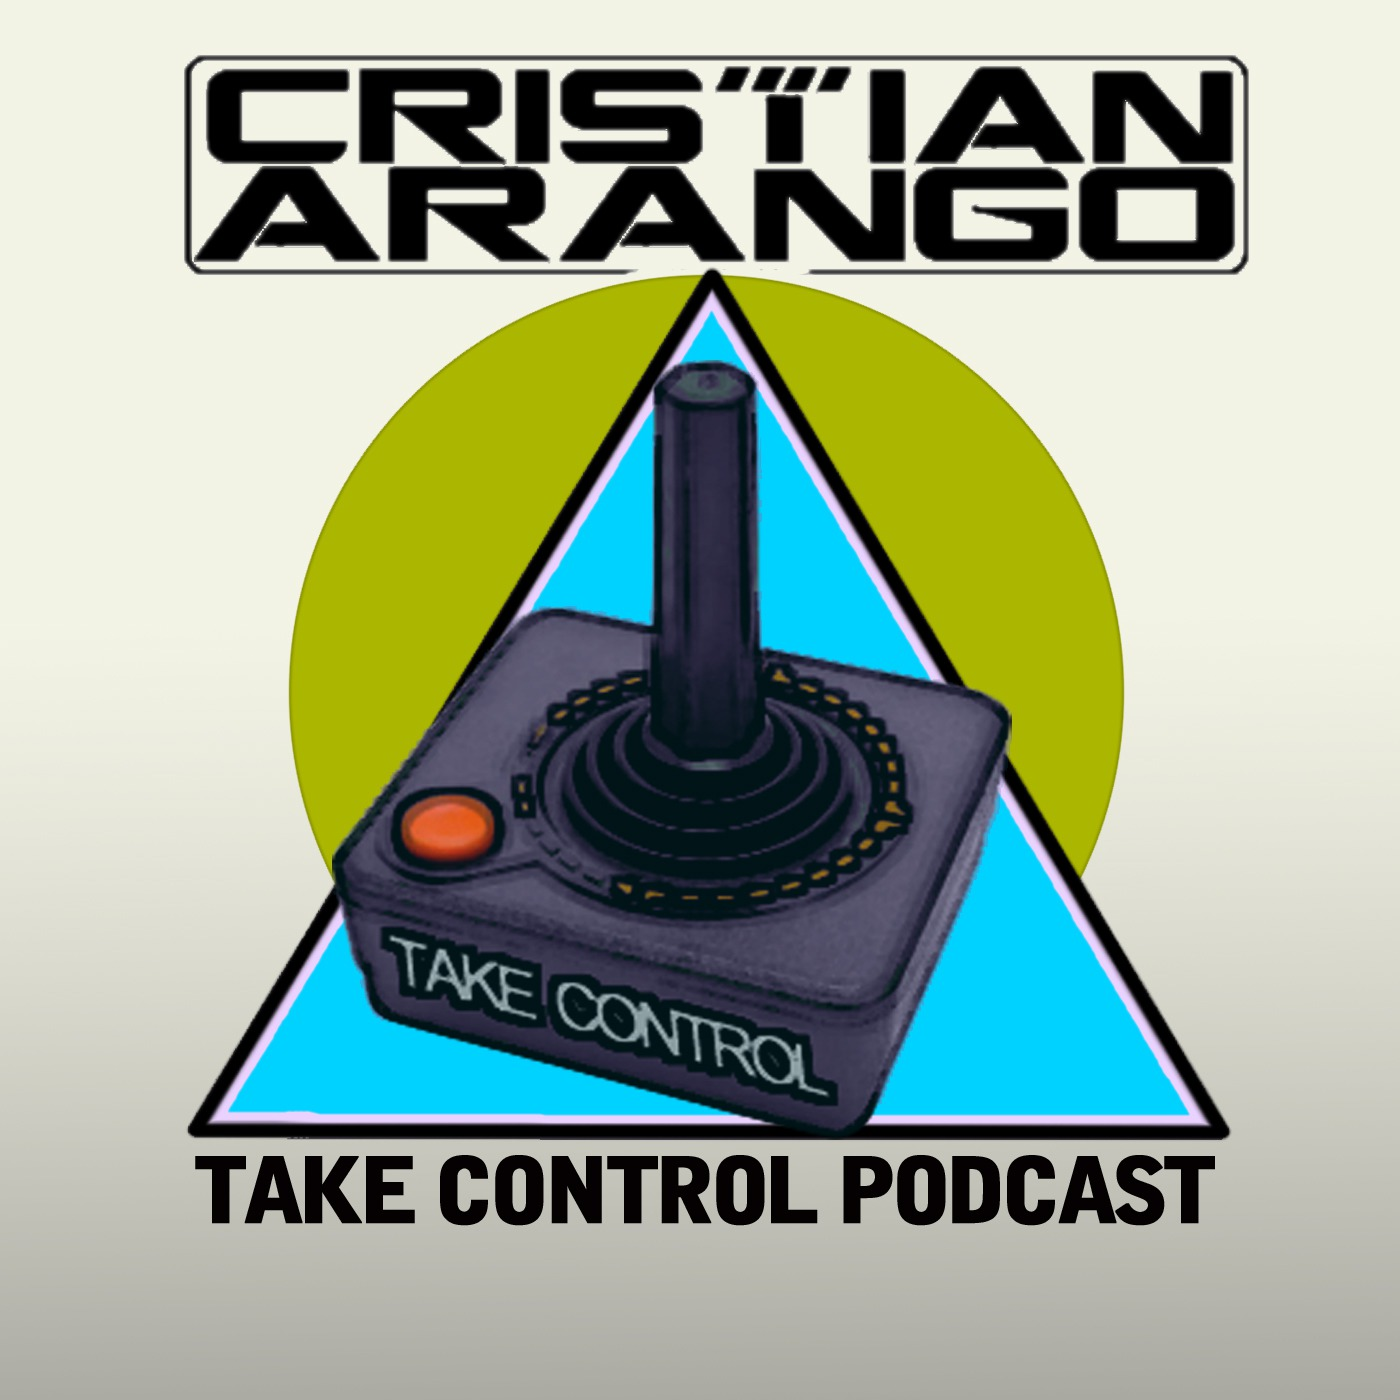 Take Control with Cristian Arango Podcast